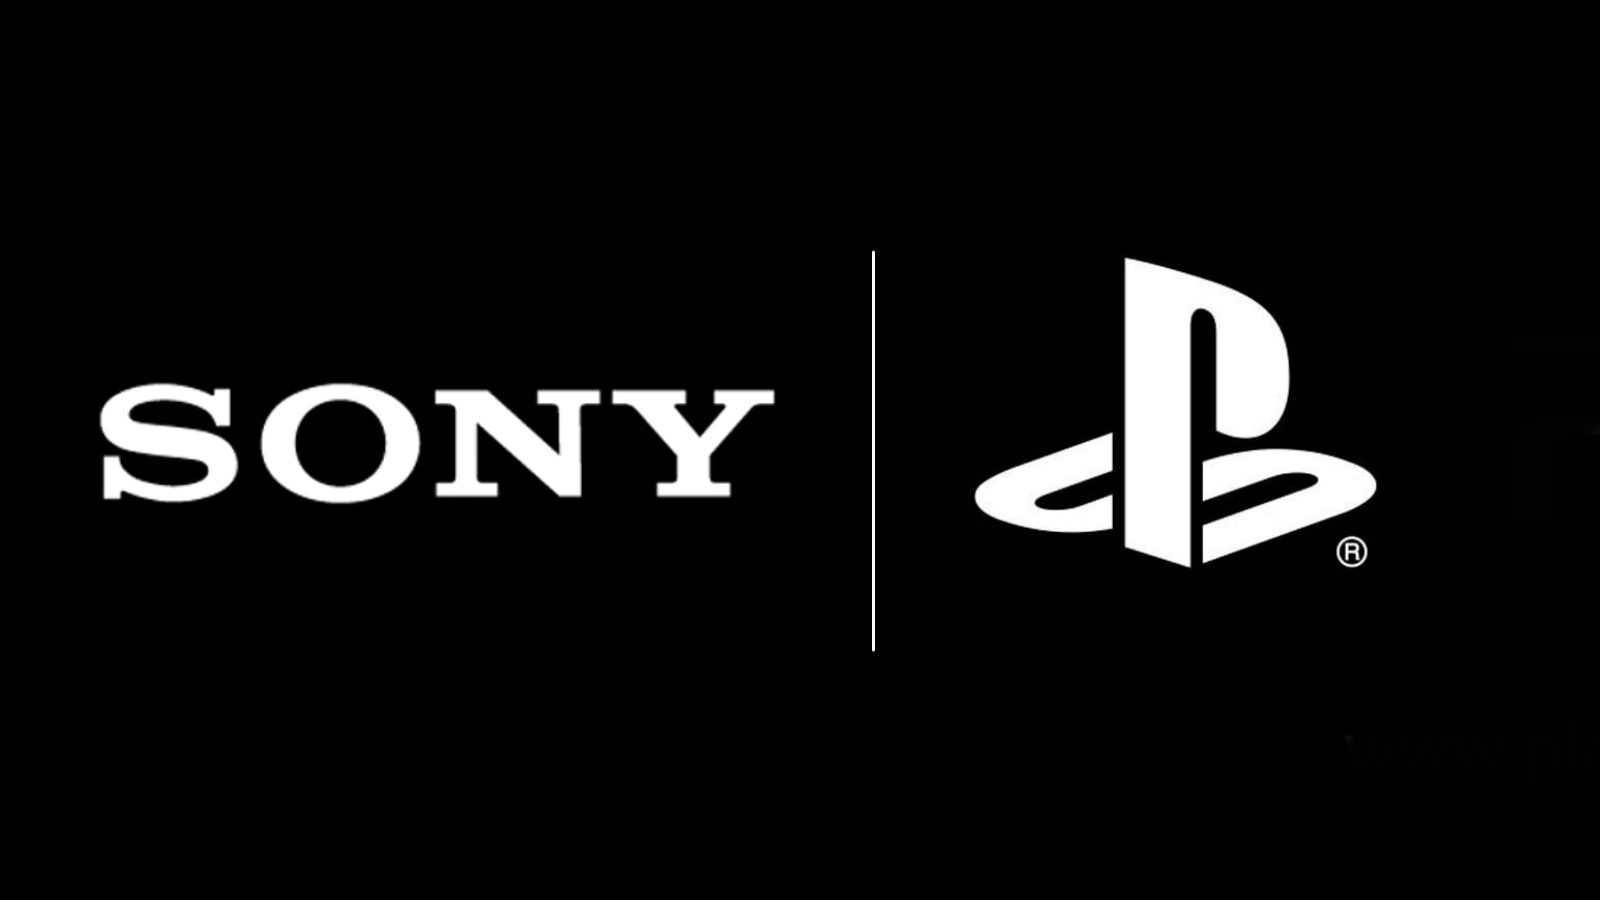 Sony Playstation PS4 PS5